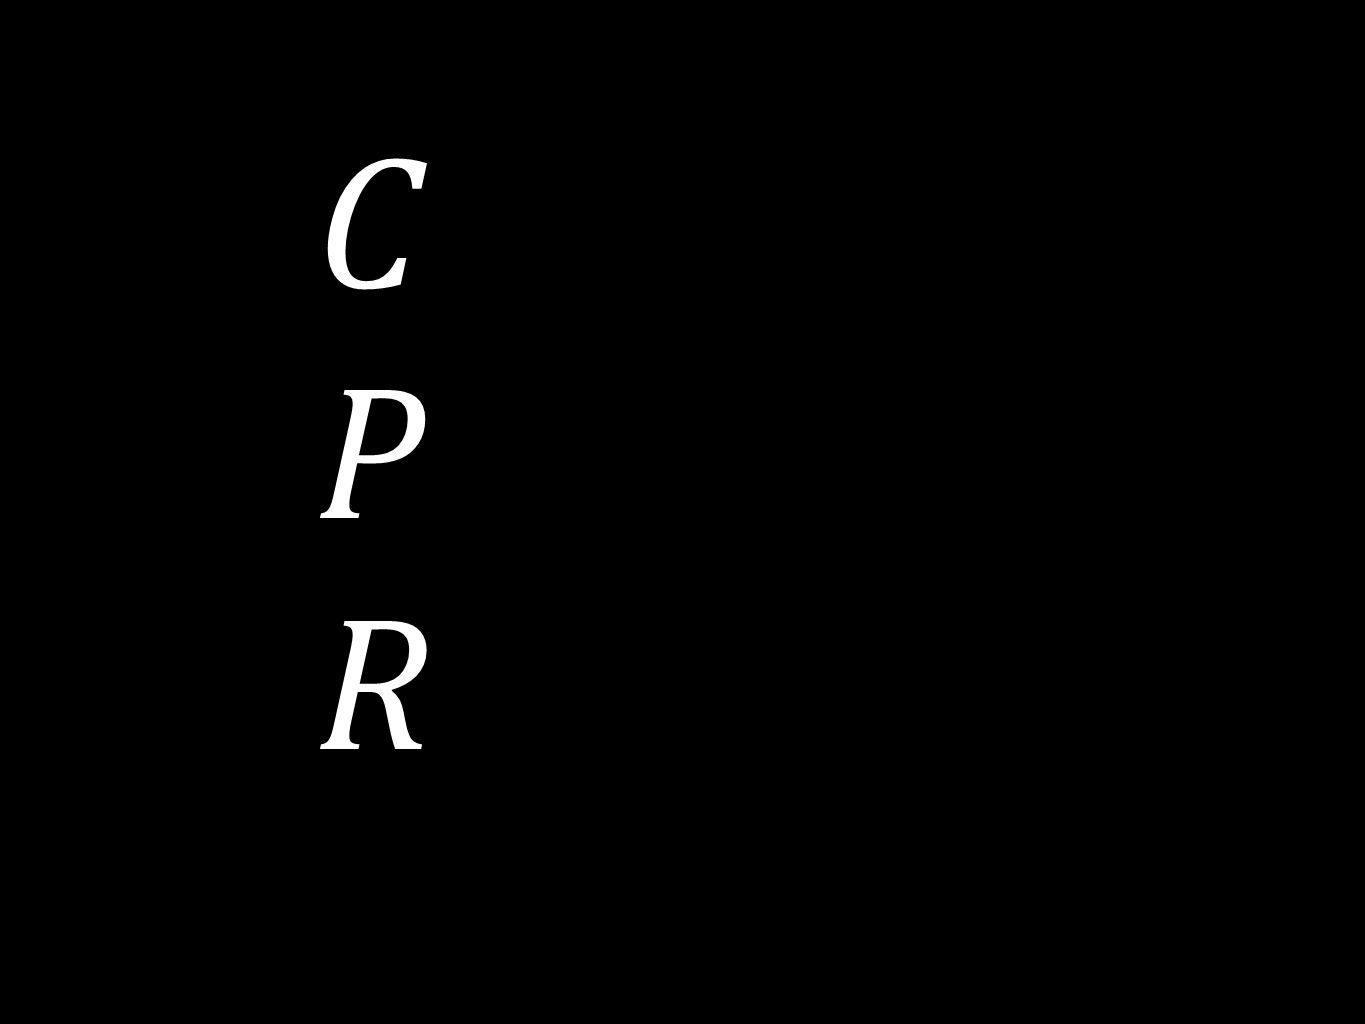 CPRCPR